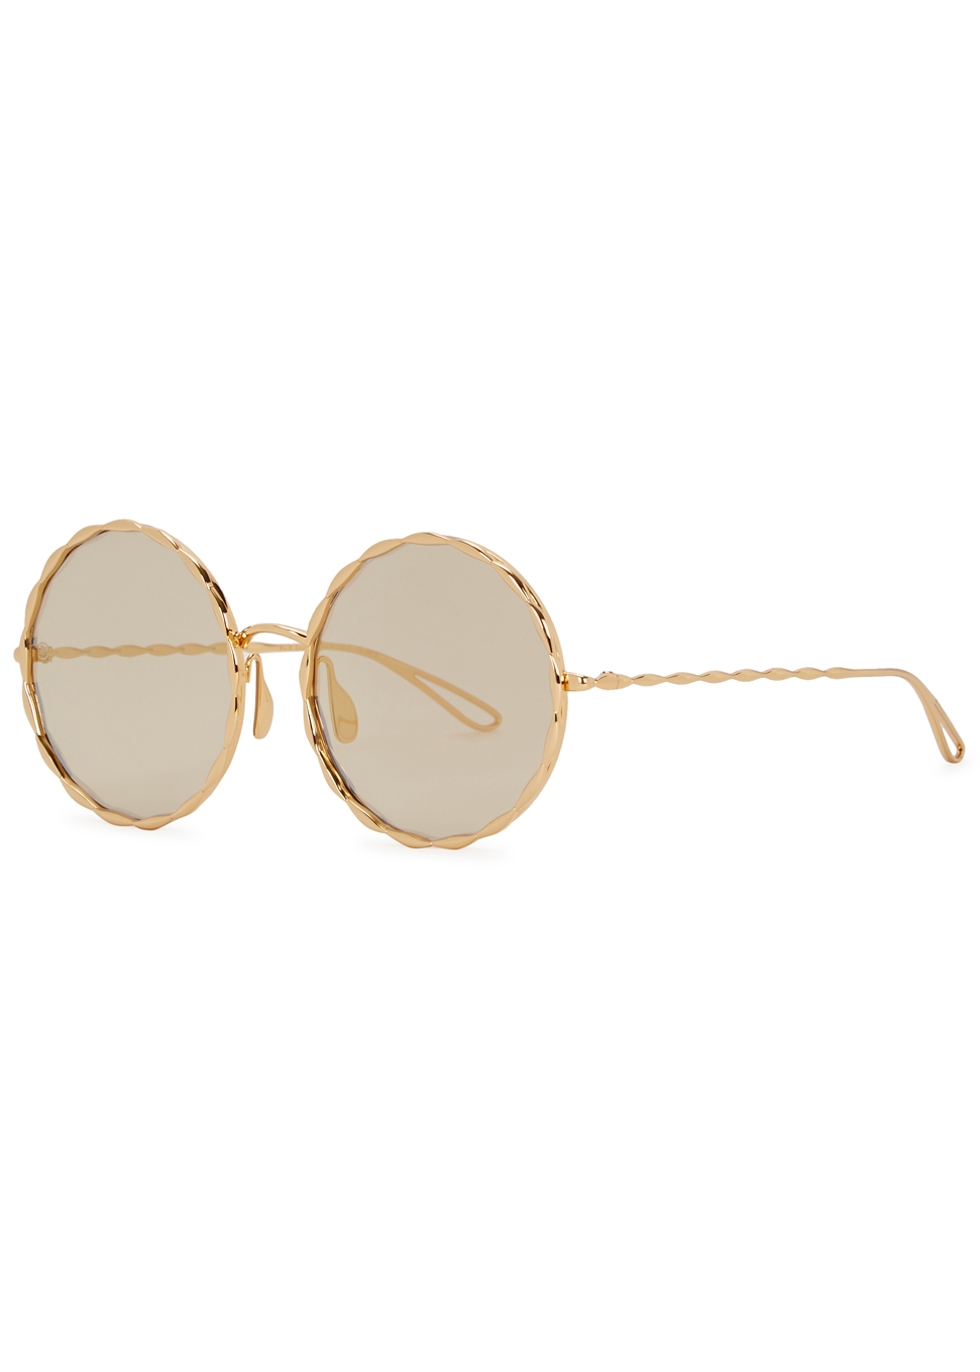 GOLD-PLATED ROUND-FRAME SUNGLASSES